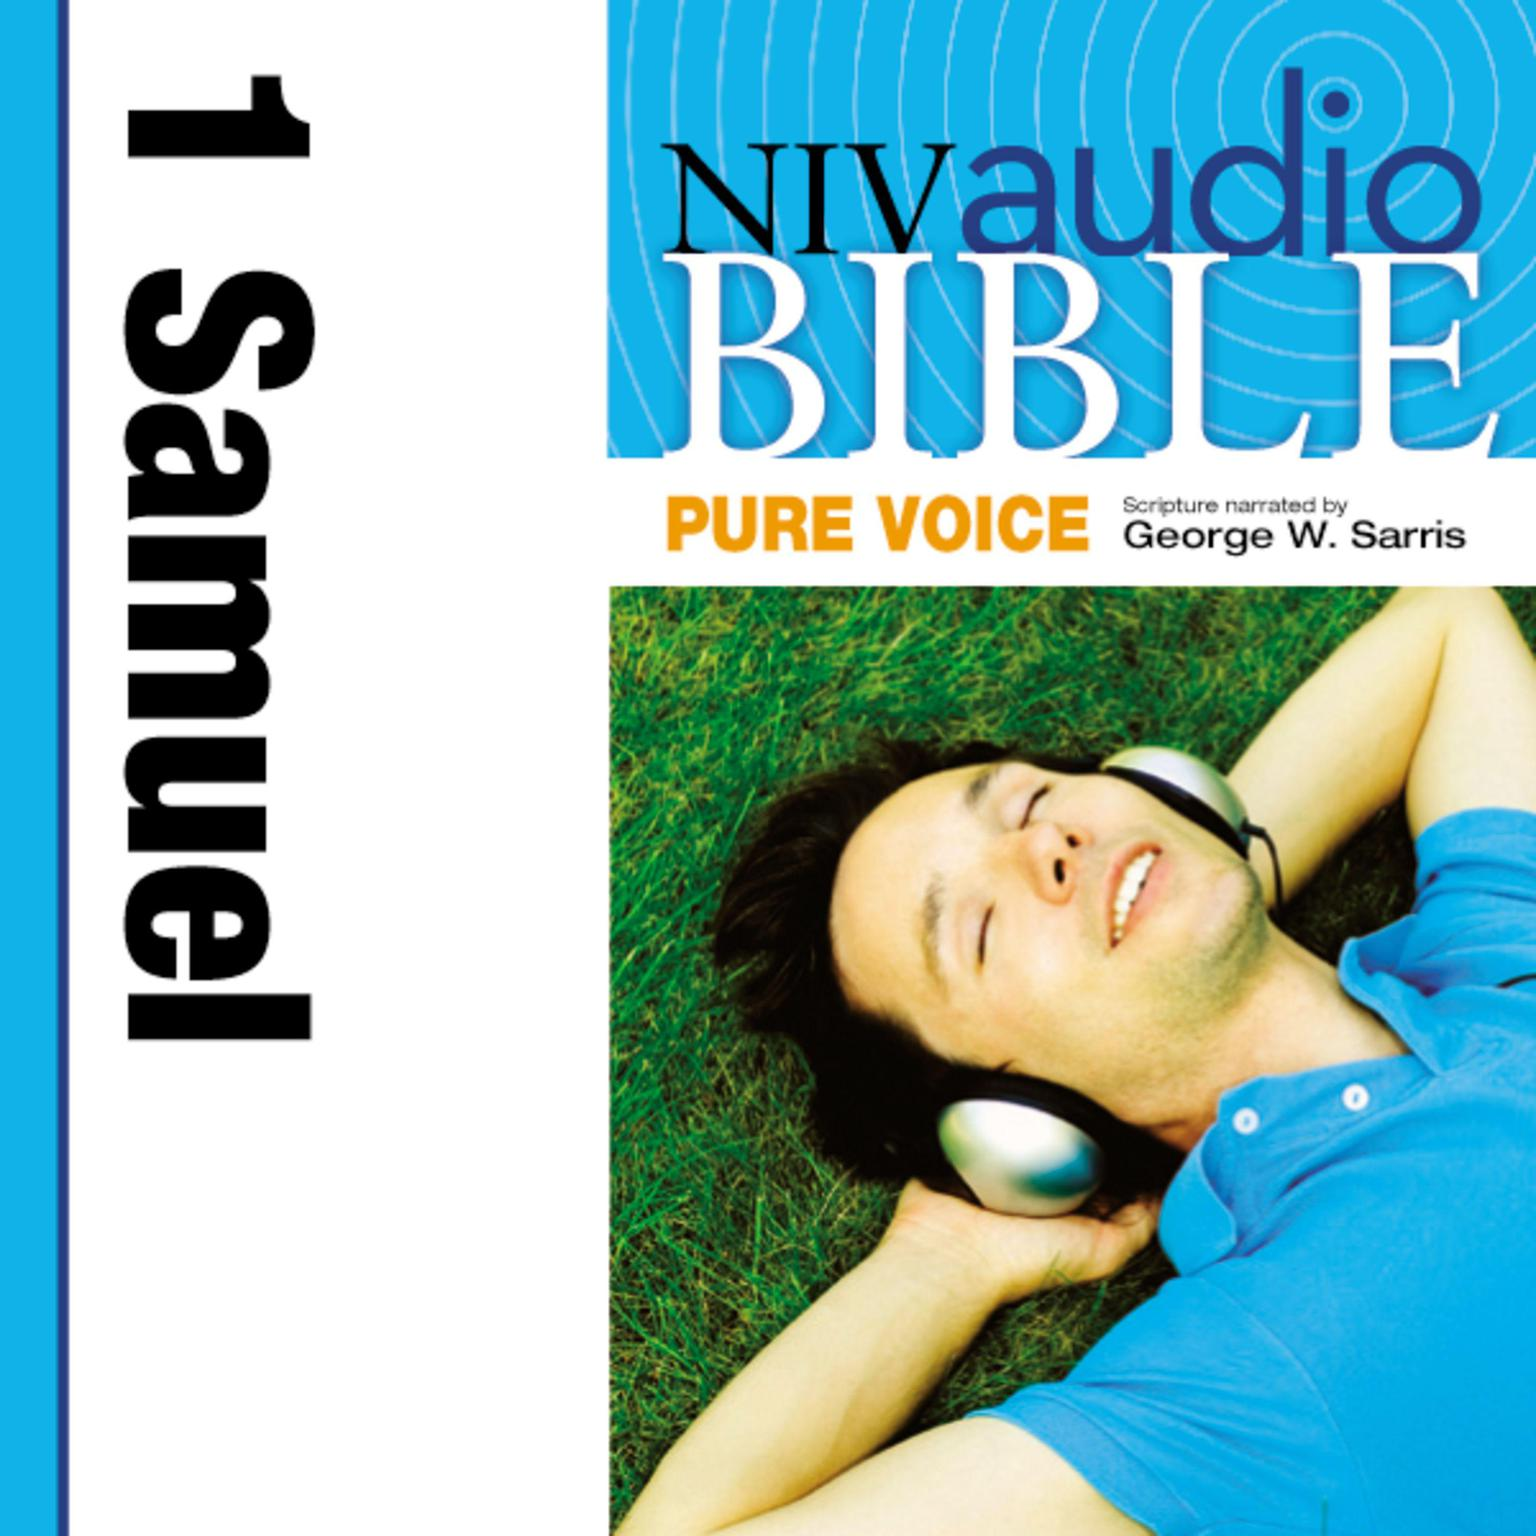 Printable NIV, Audio Bible, Pure Voice: 1 Samuel, Audio Download (Narrated by George W. Sarris) Audiobook Cover Art